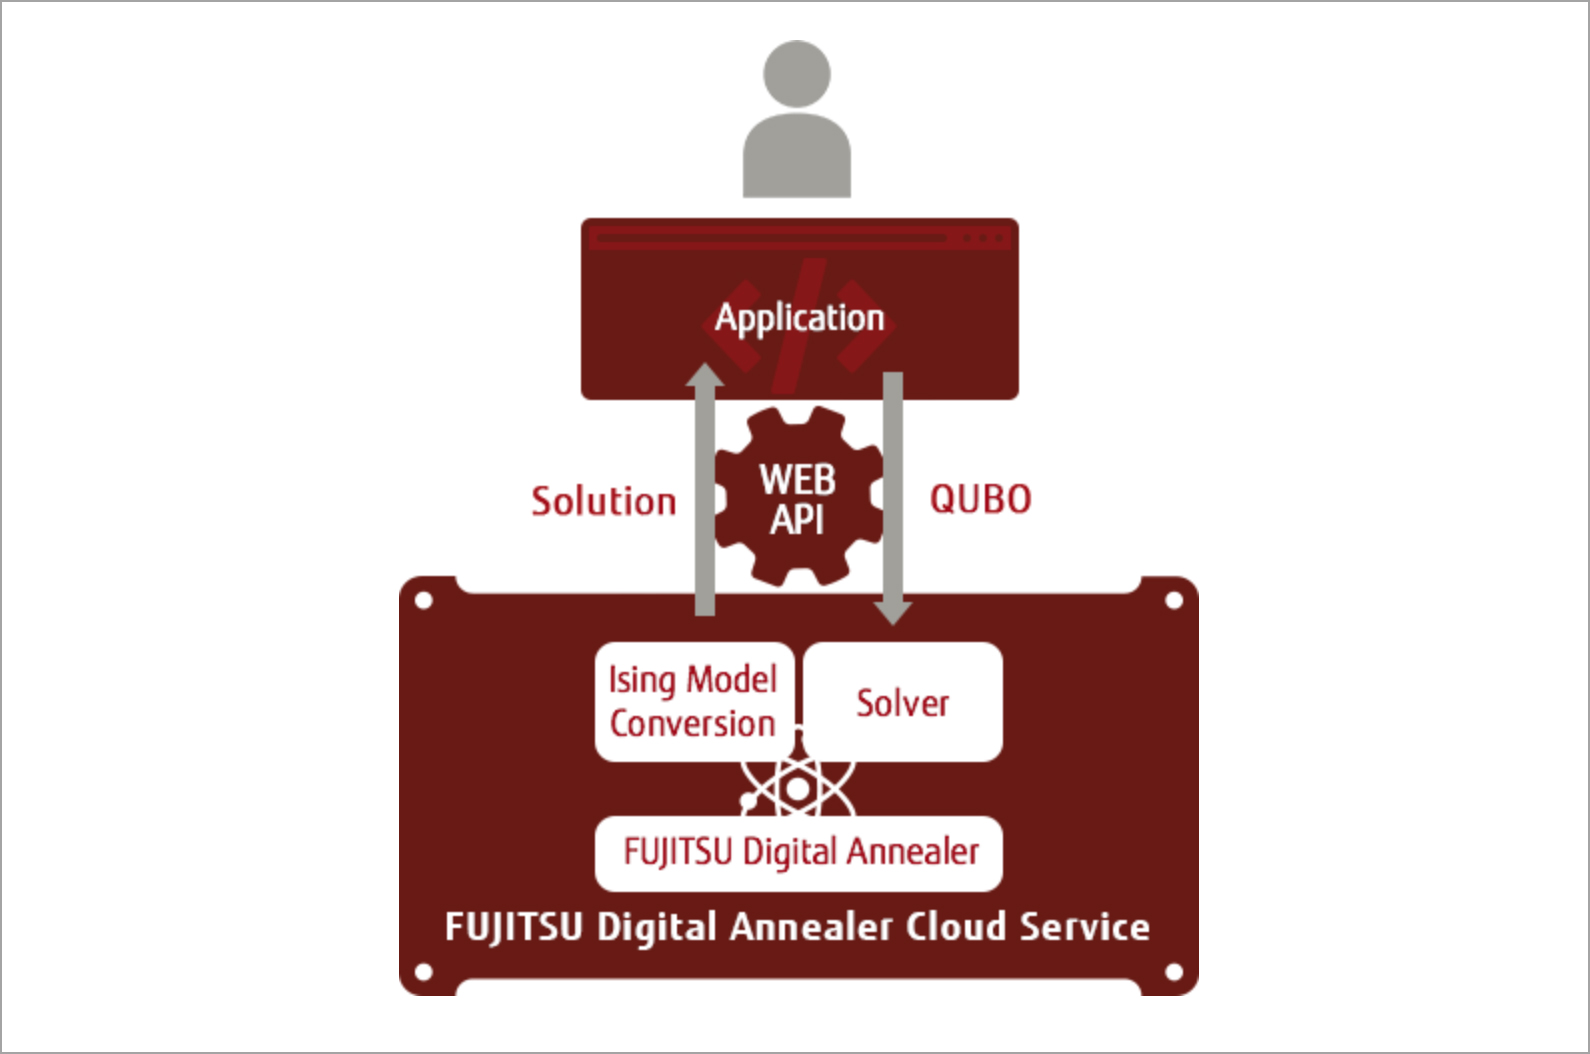 Fujitsu Digital Annealer Cloud service